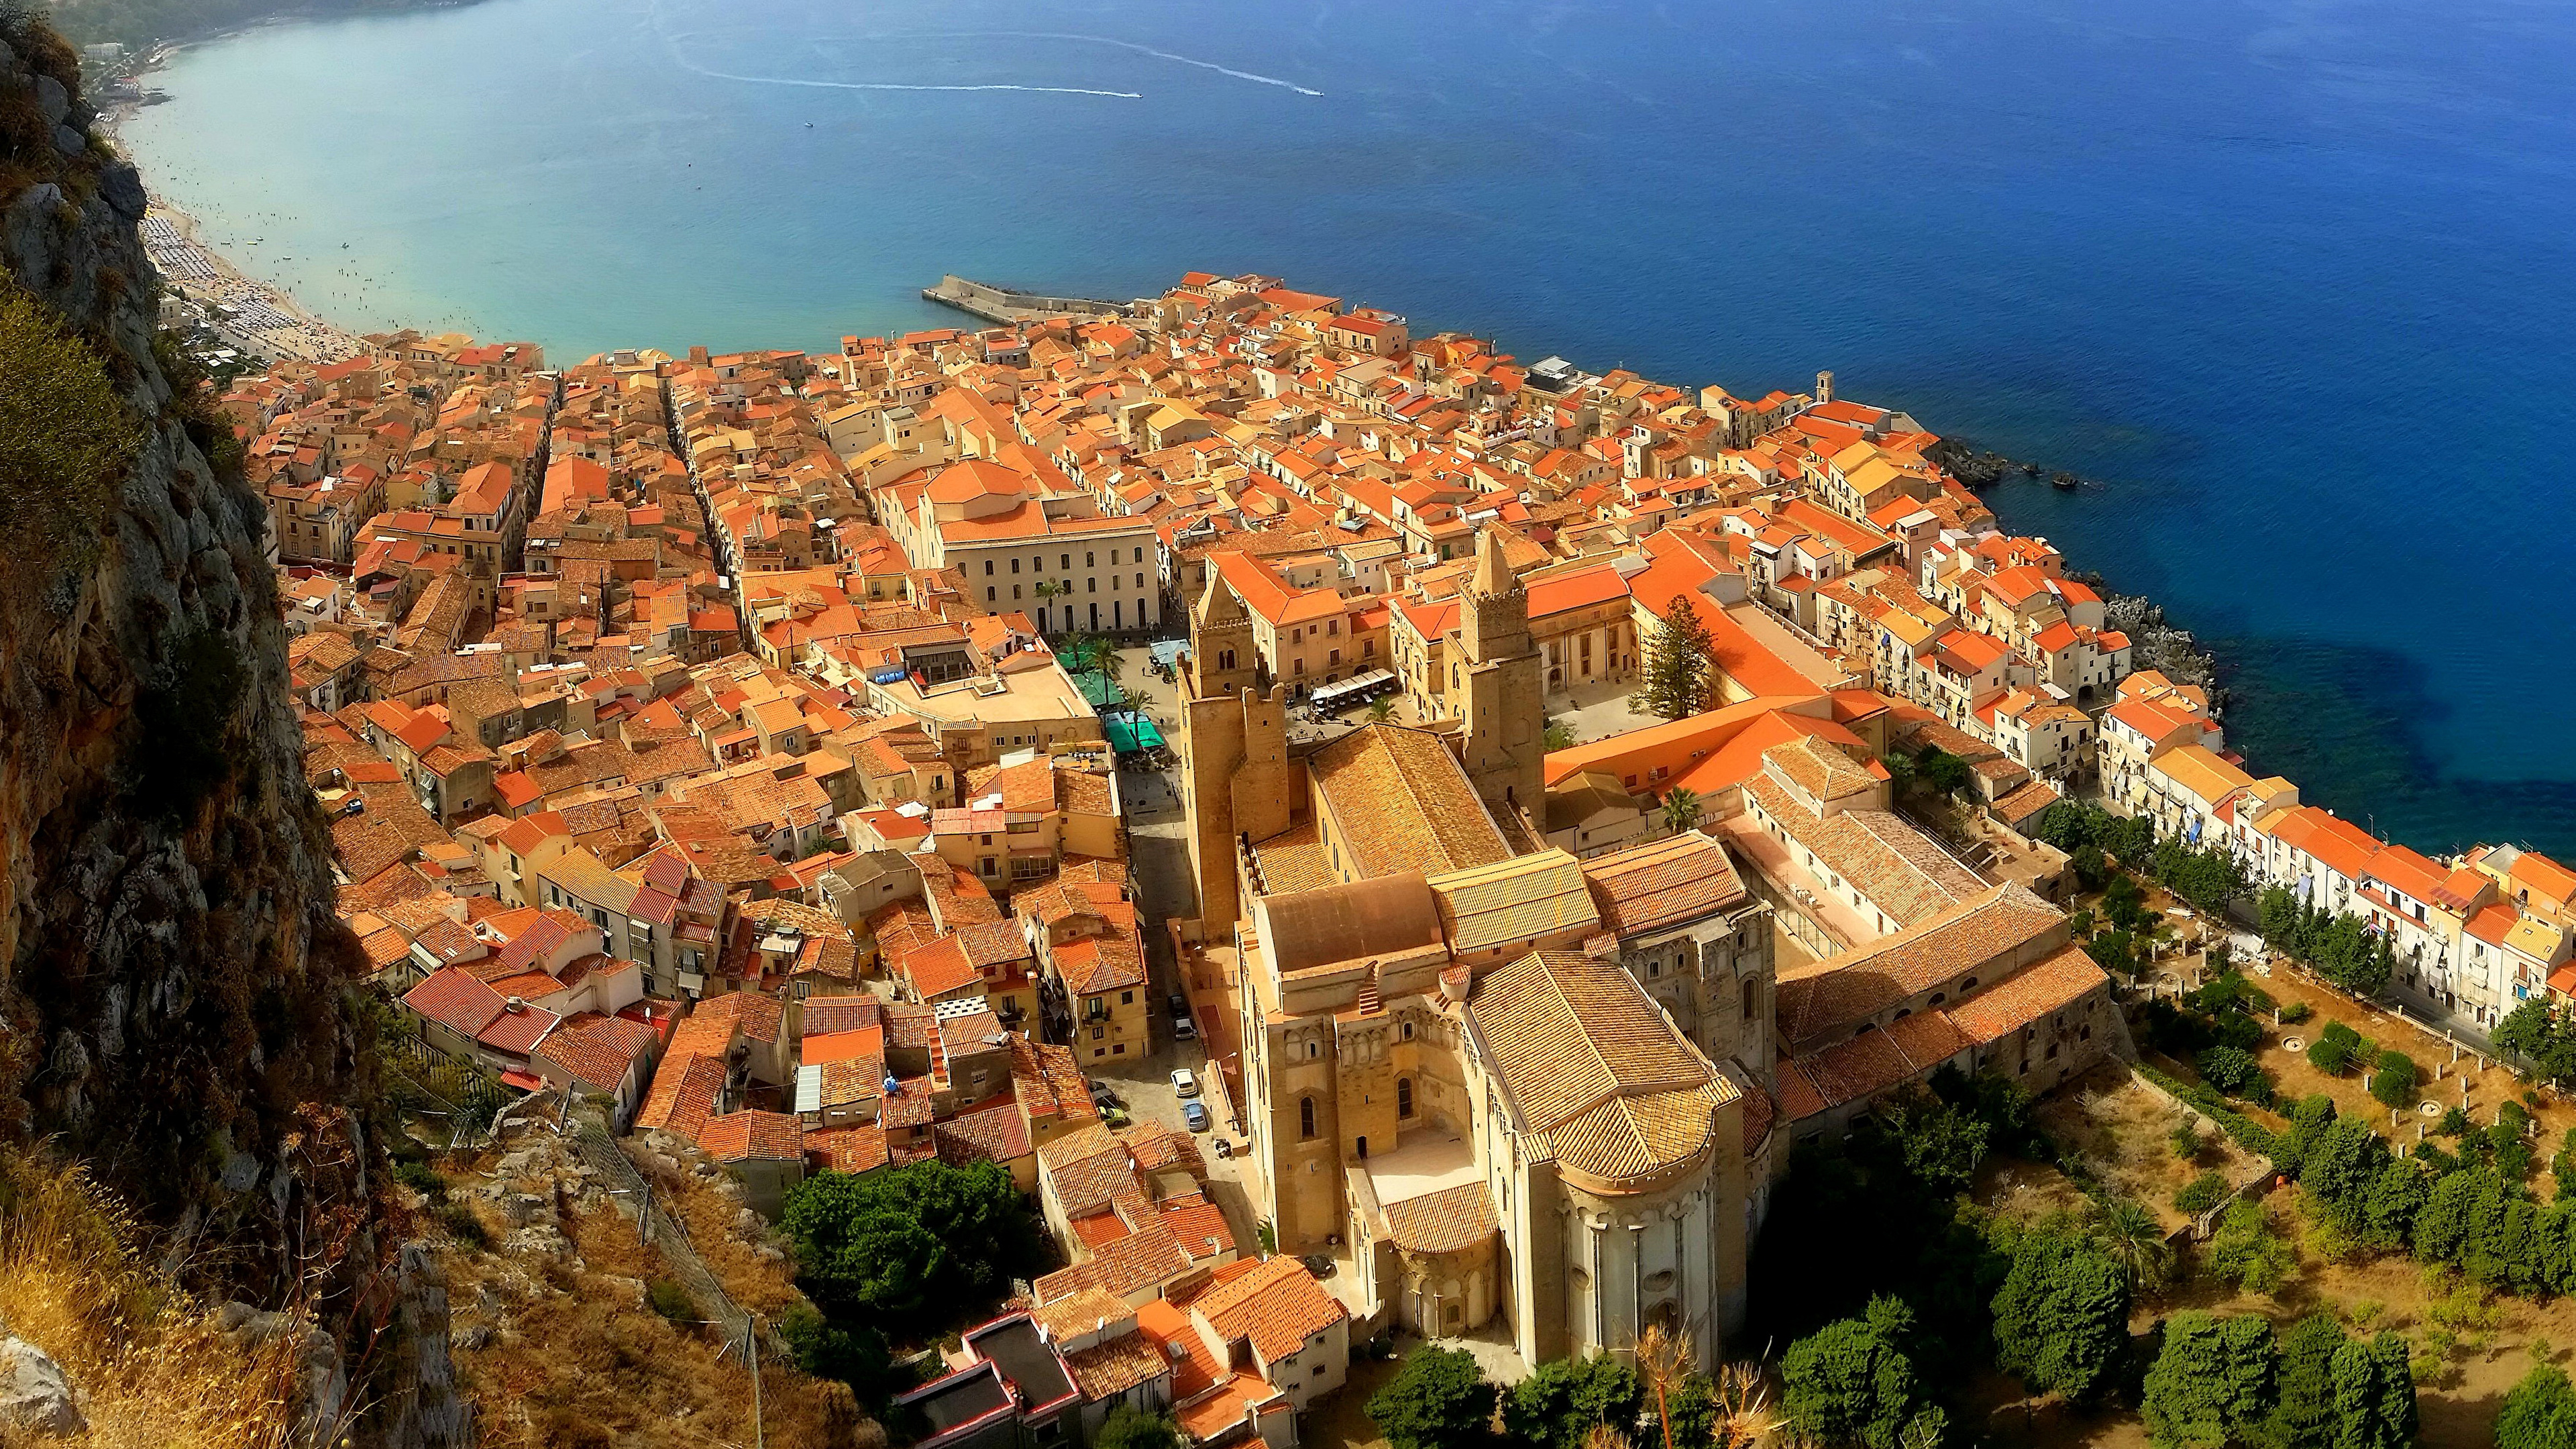 Desktop Wallpapers Sicily Italy Cefalu From Above Houses 3840x2160